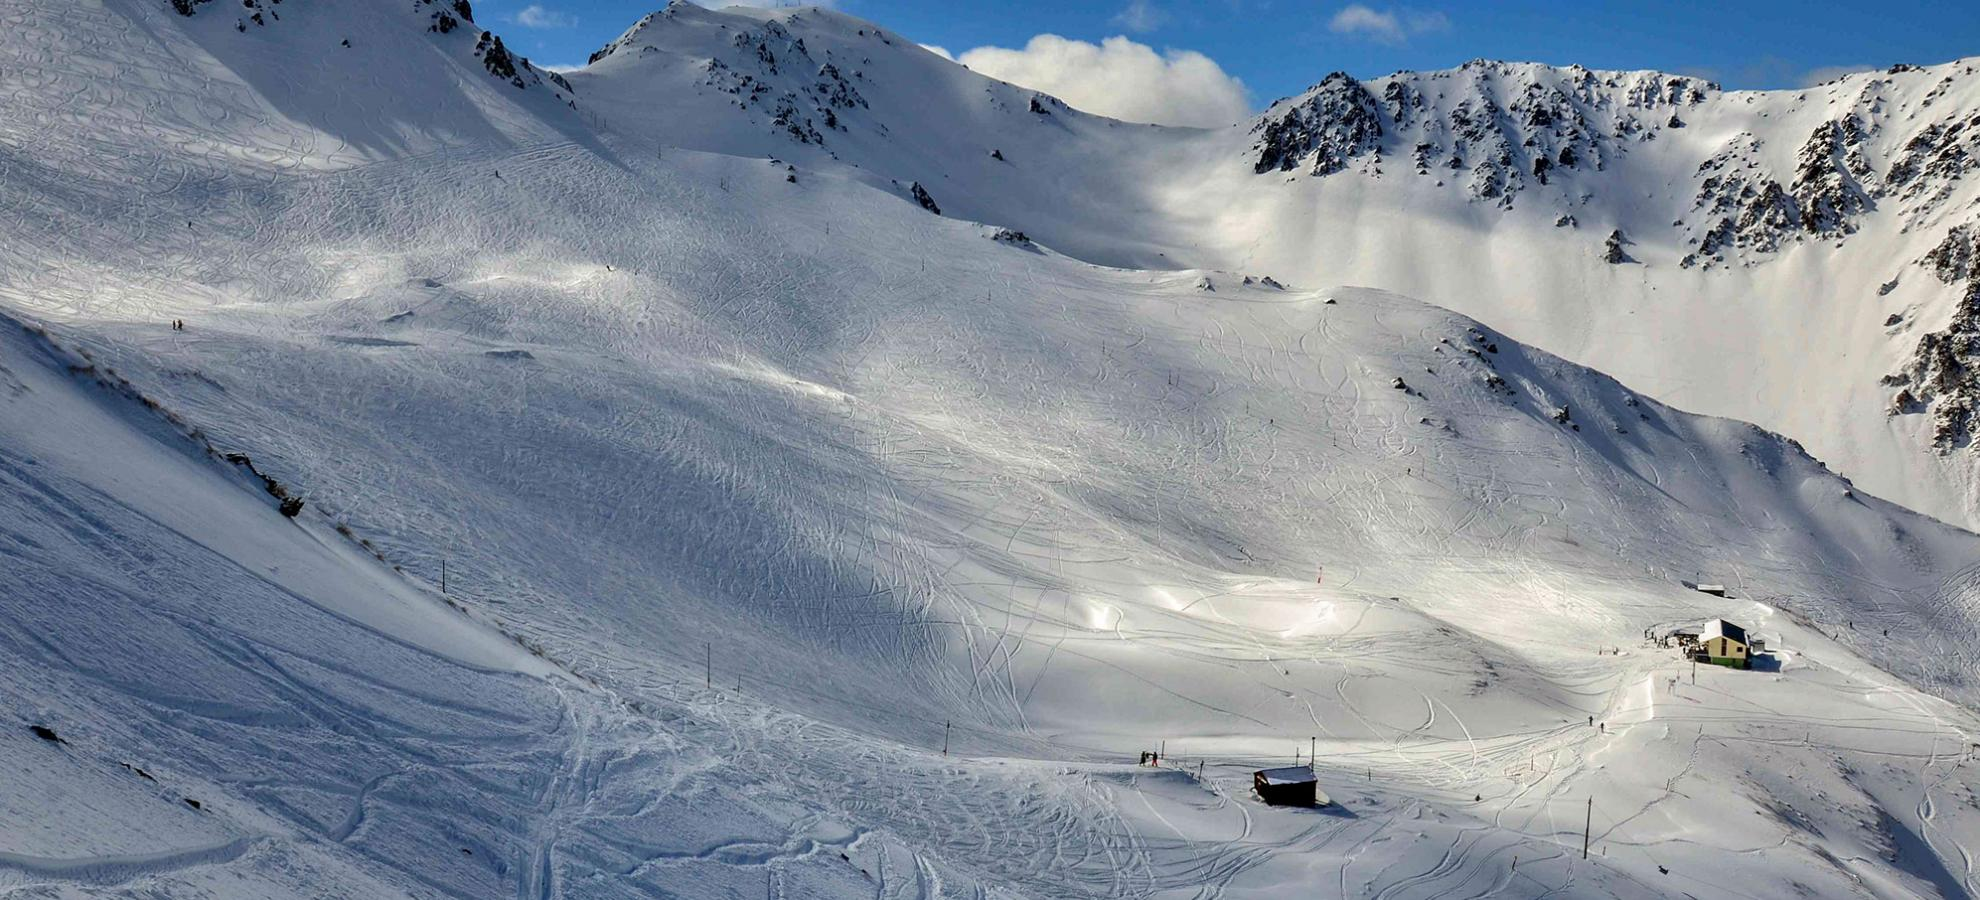 Off Piste Skiing New Zealand